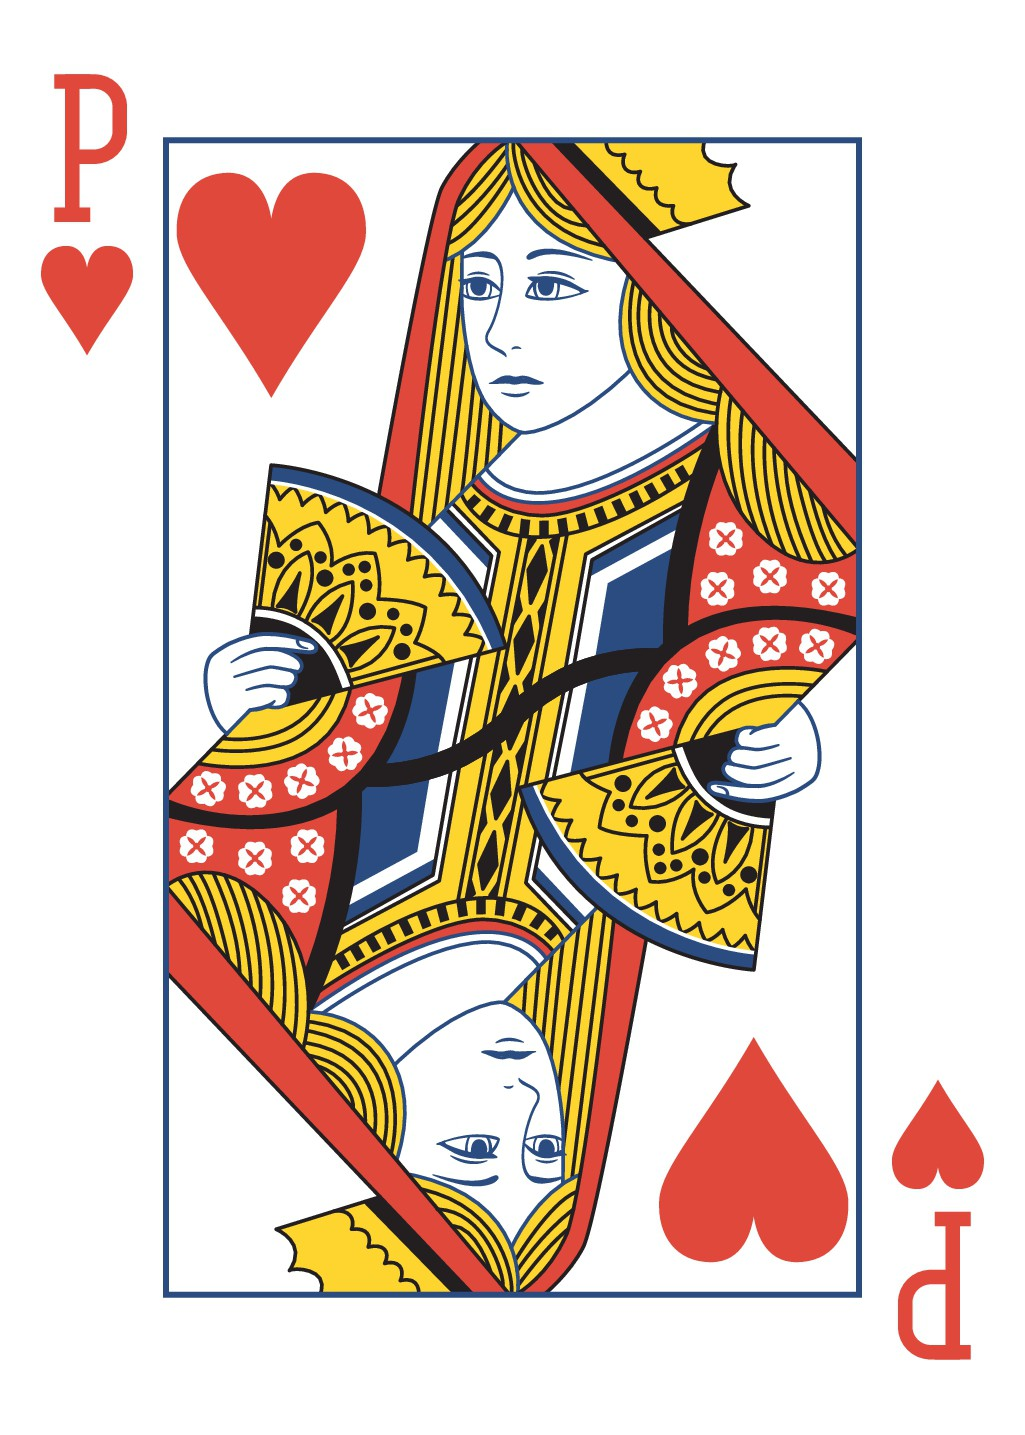 Playing Cards - New Face Cards